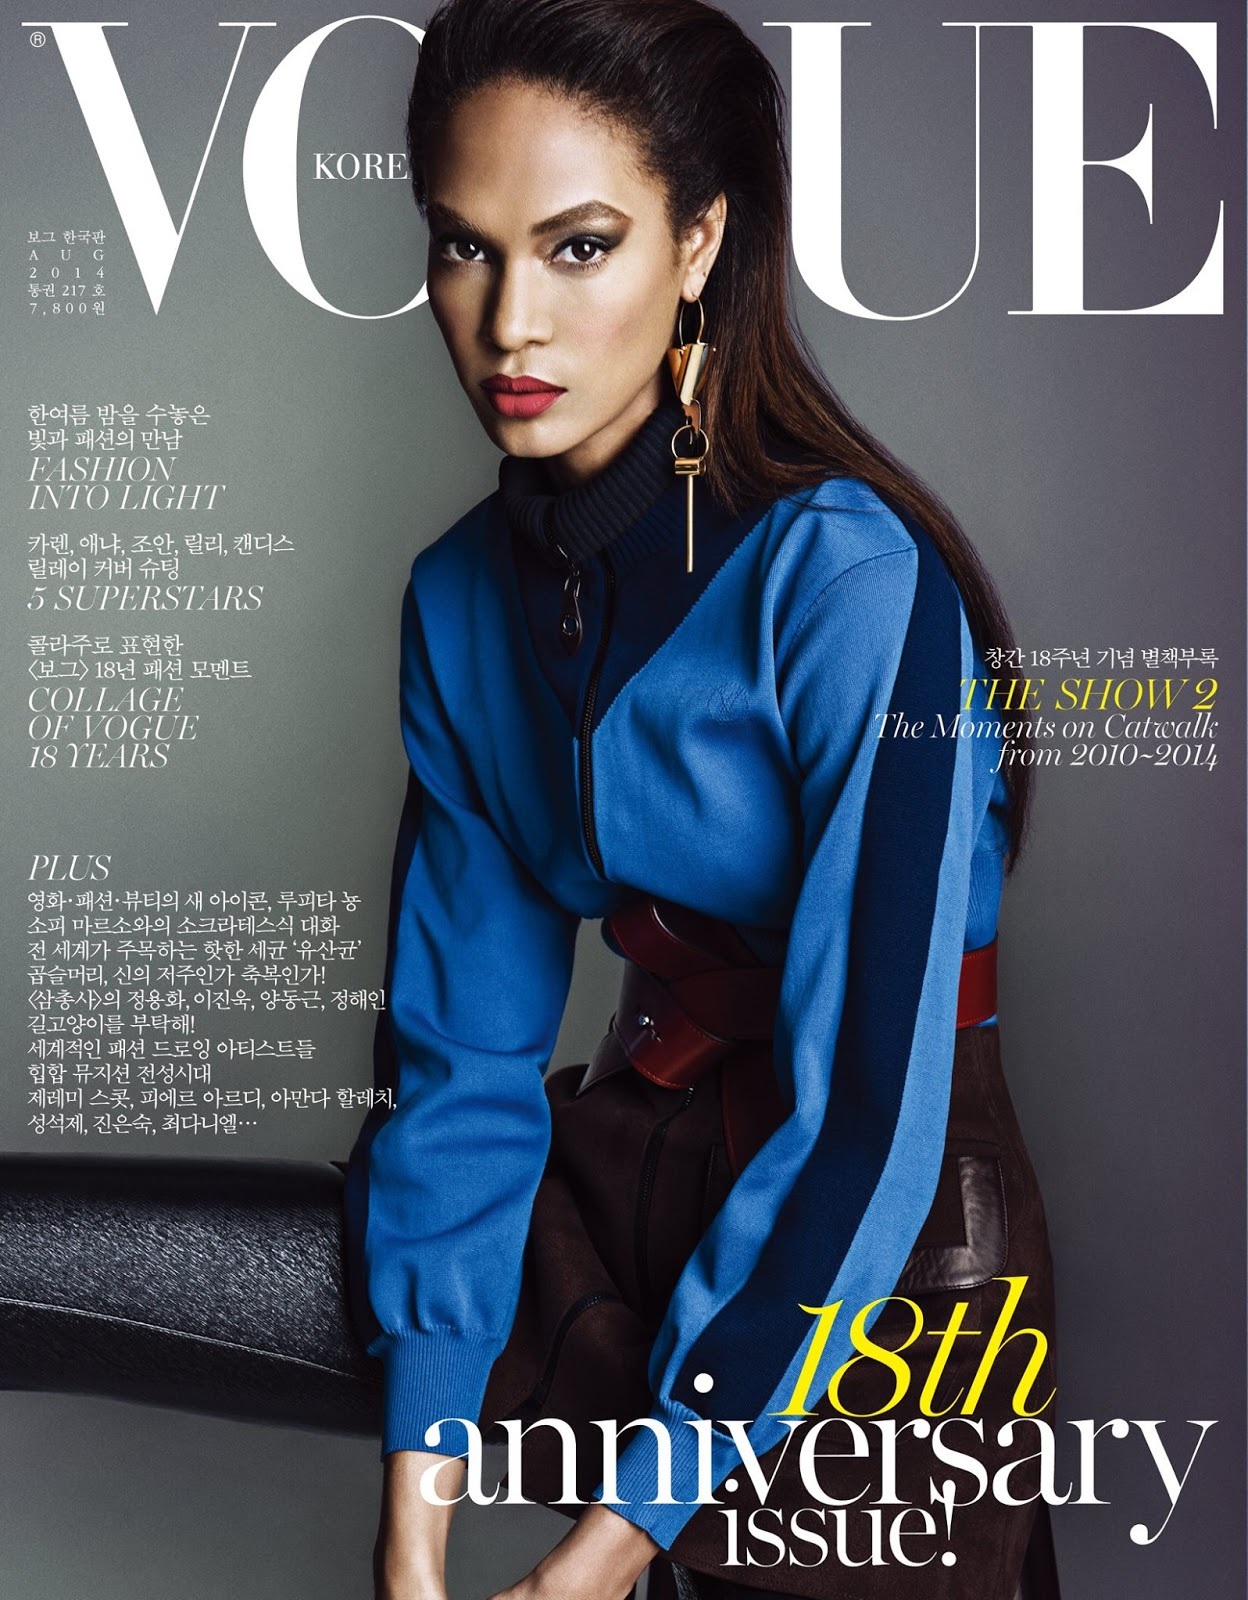 2019 year for girls- Donaldson lily vogue korea august